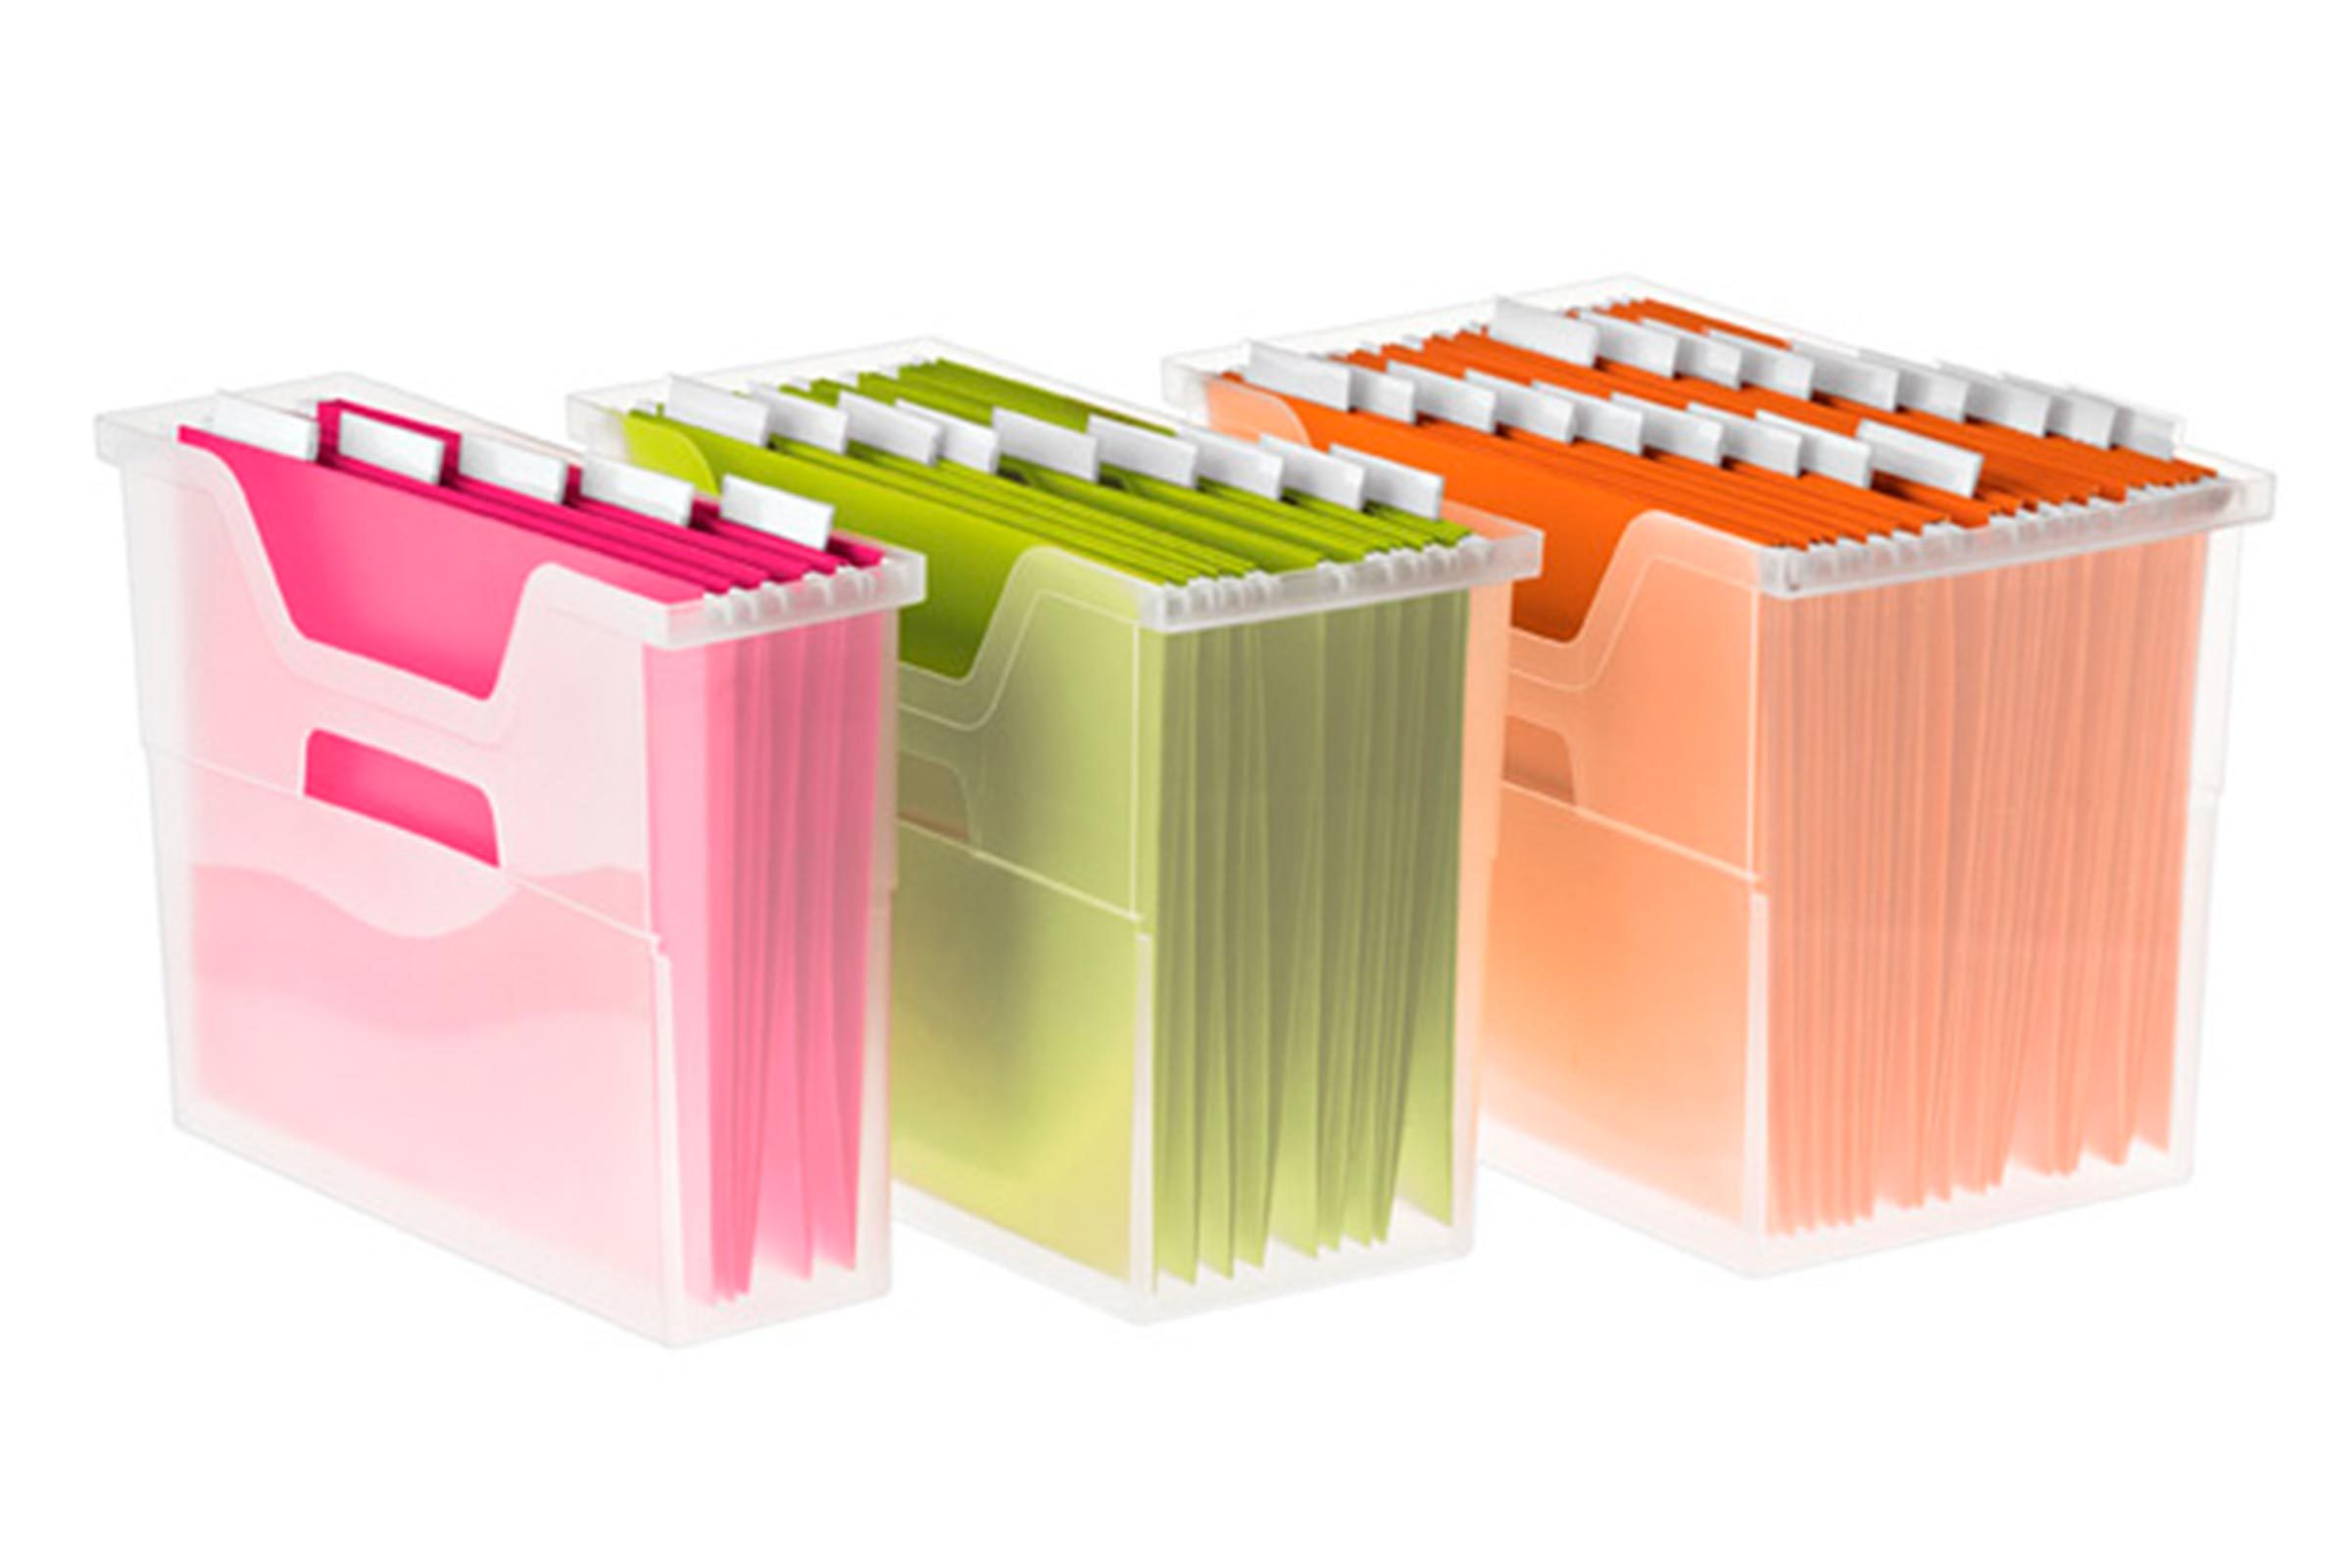 Paper filing system